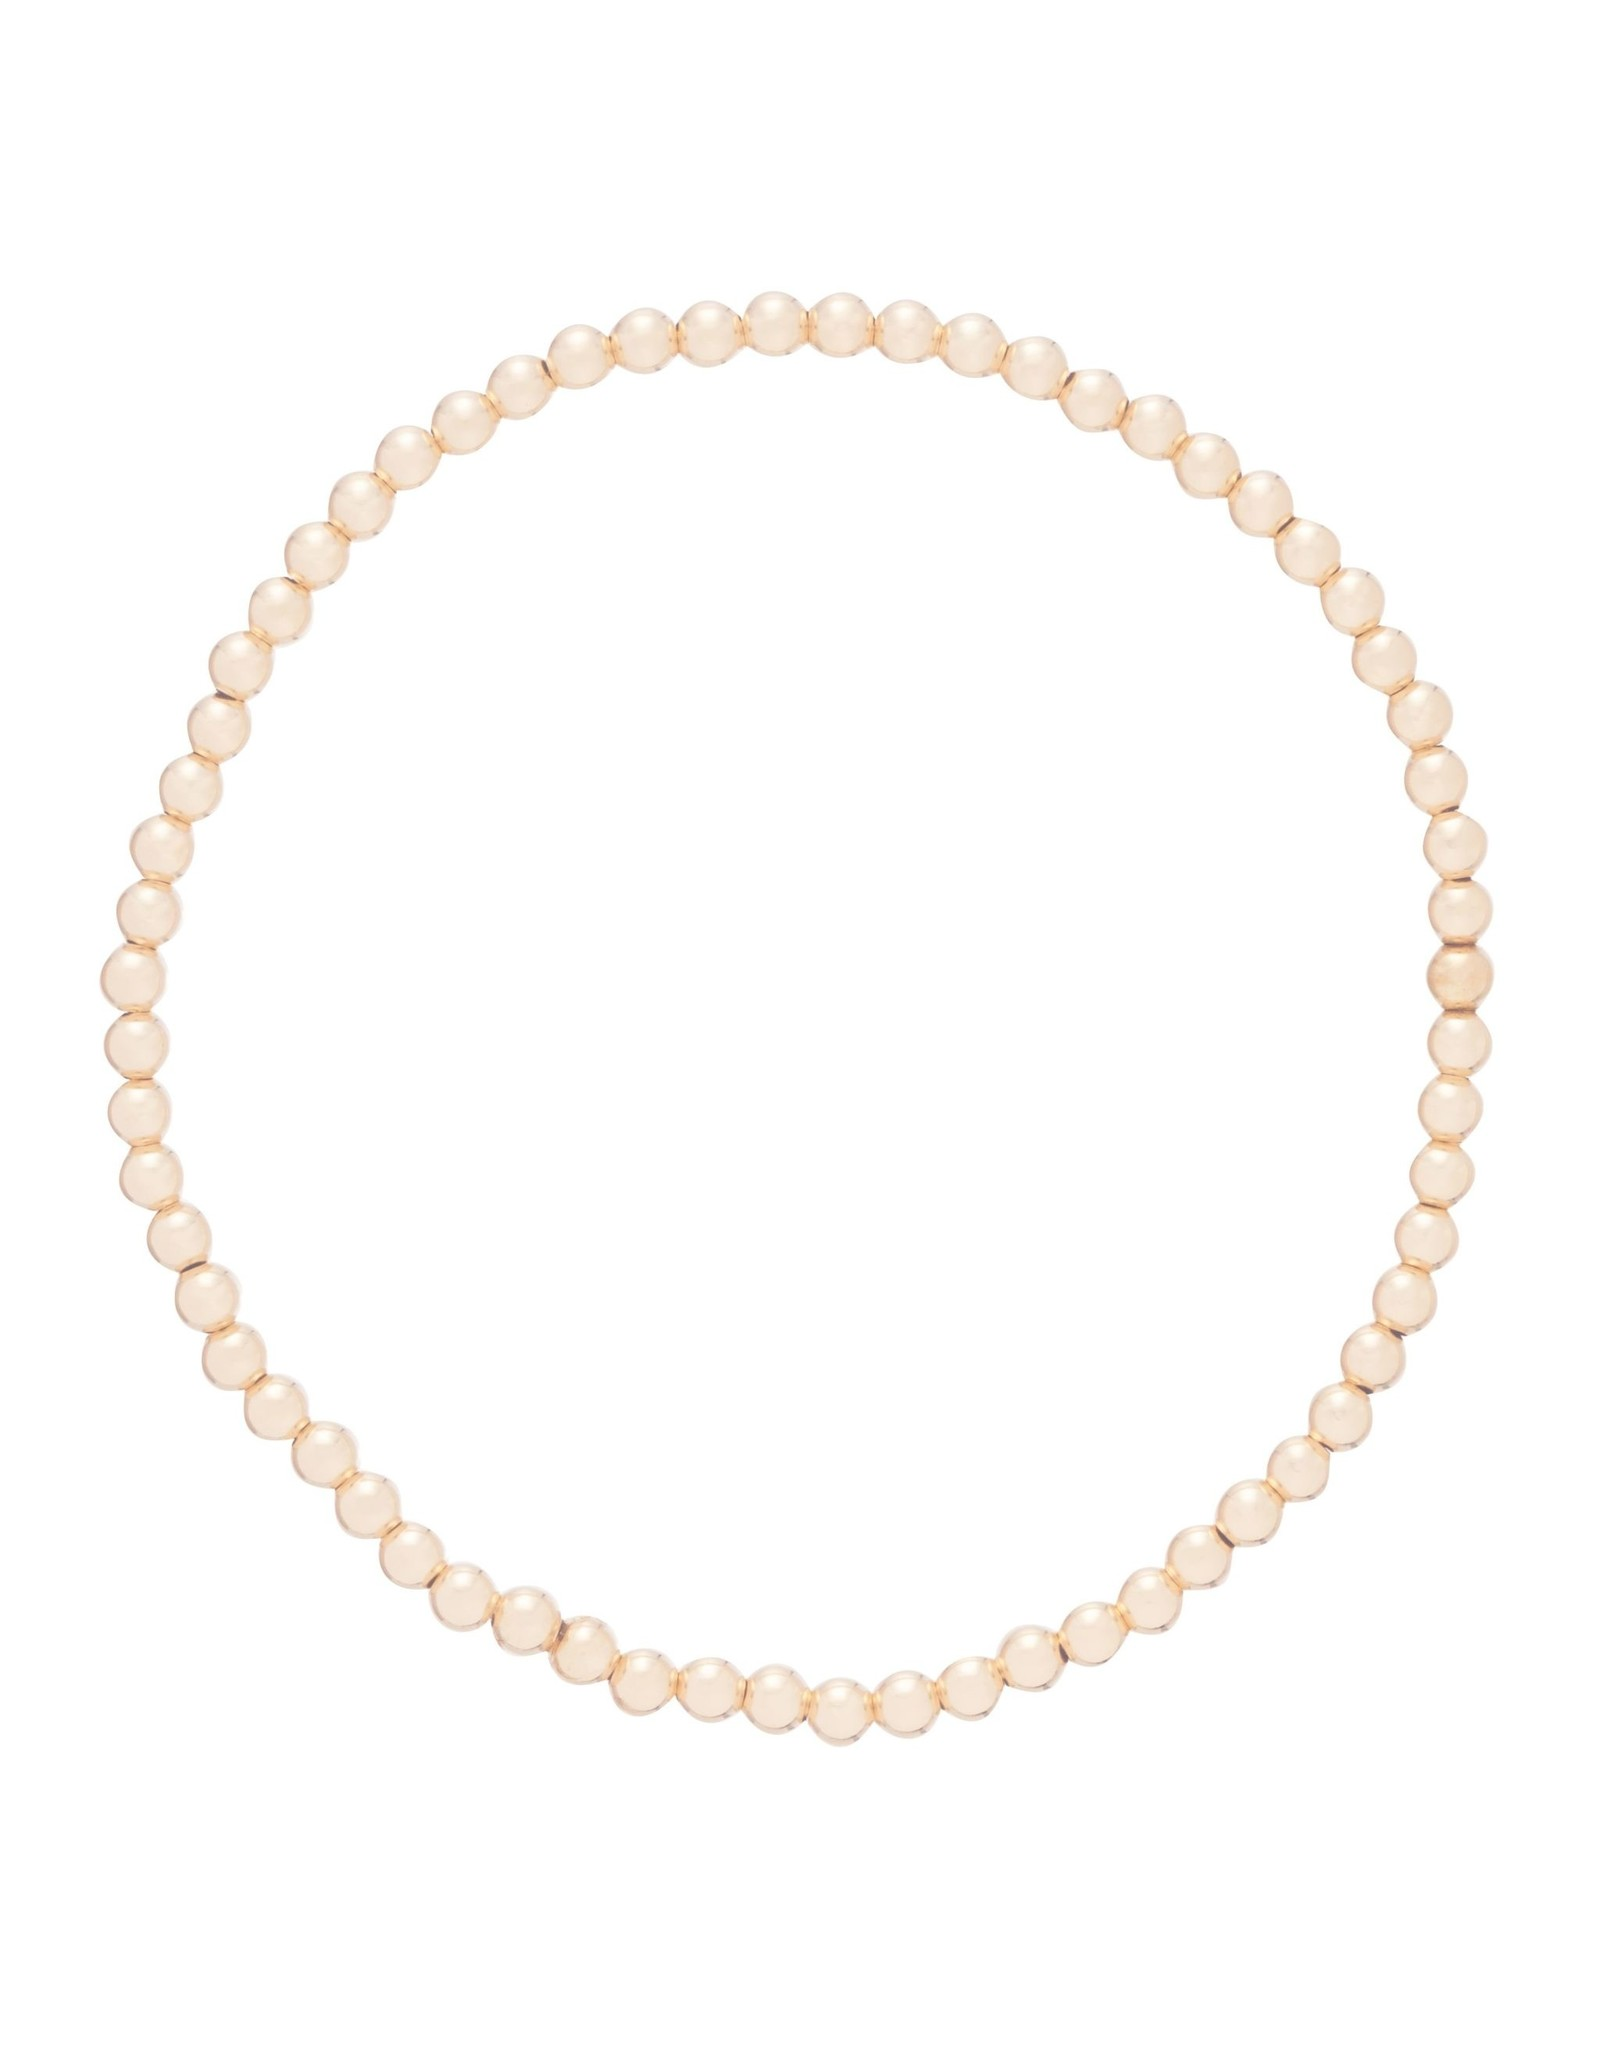 Extends Classic Gold 5mm Bead Brace